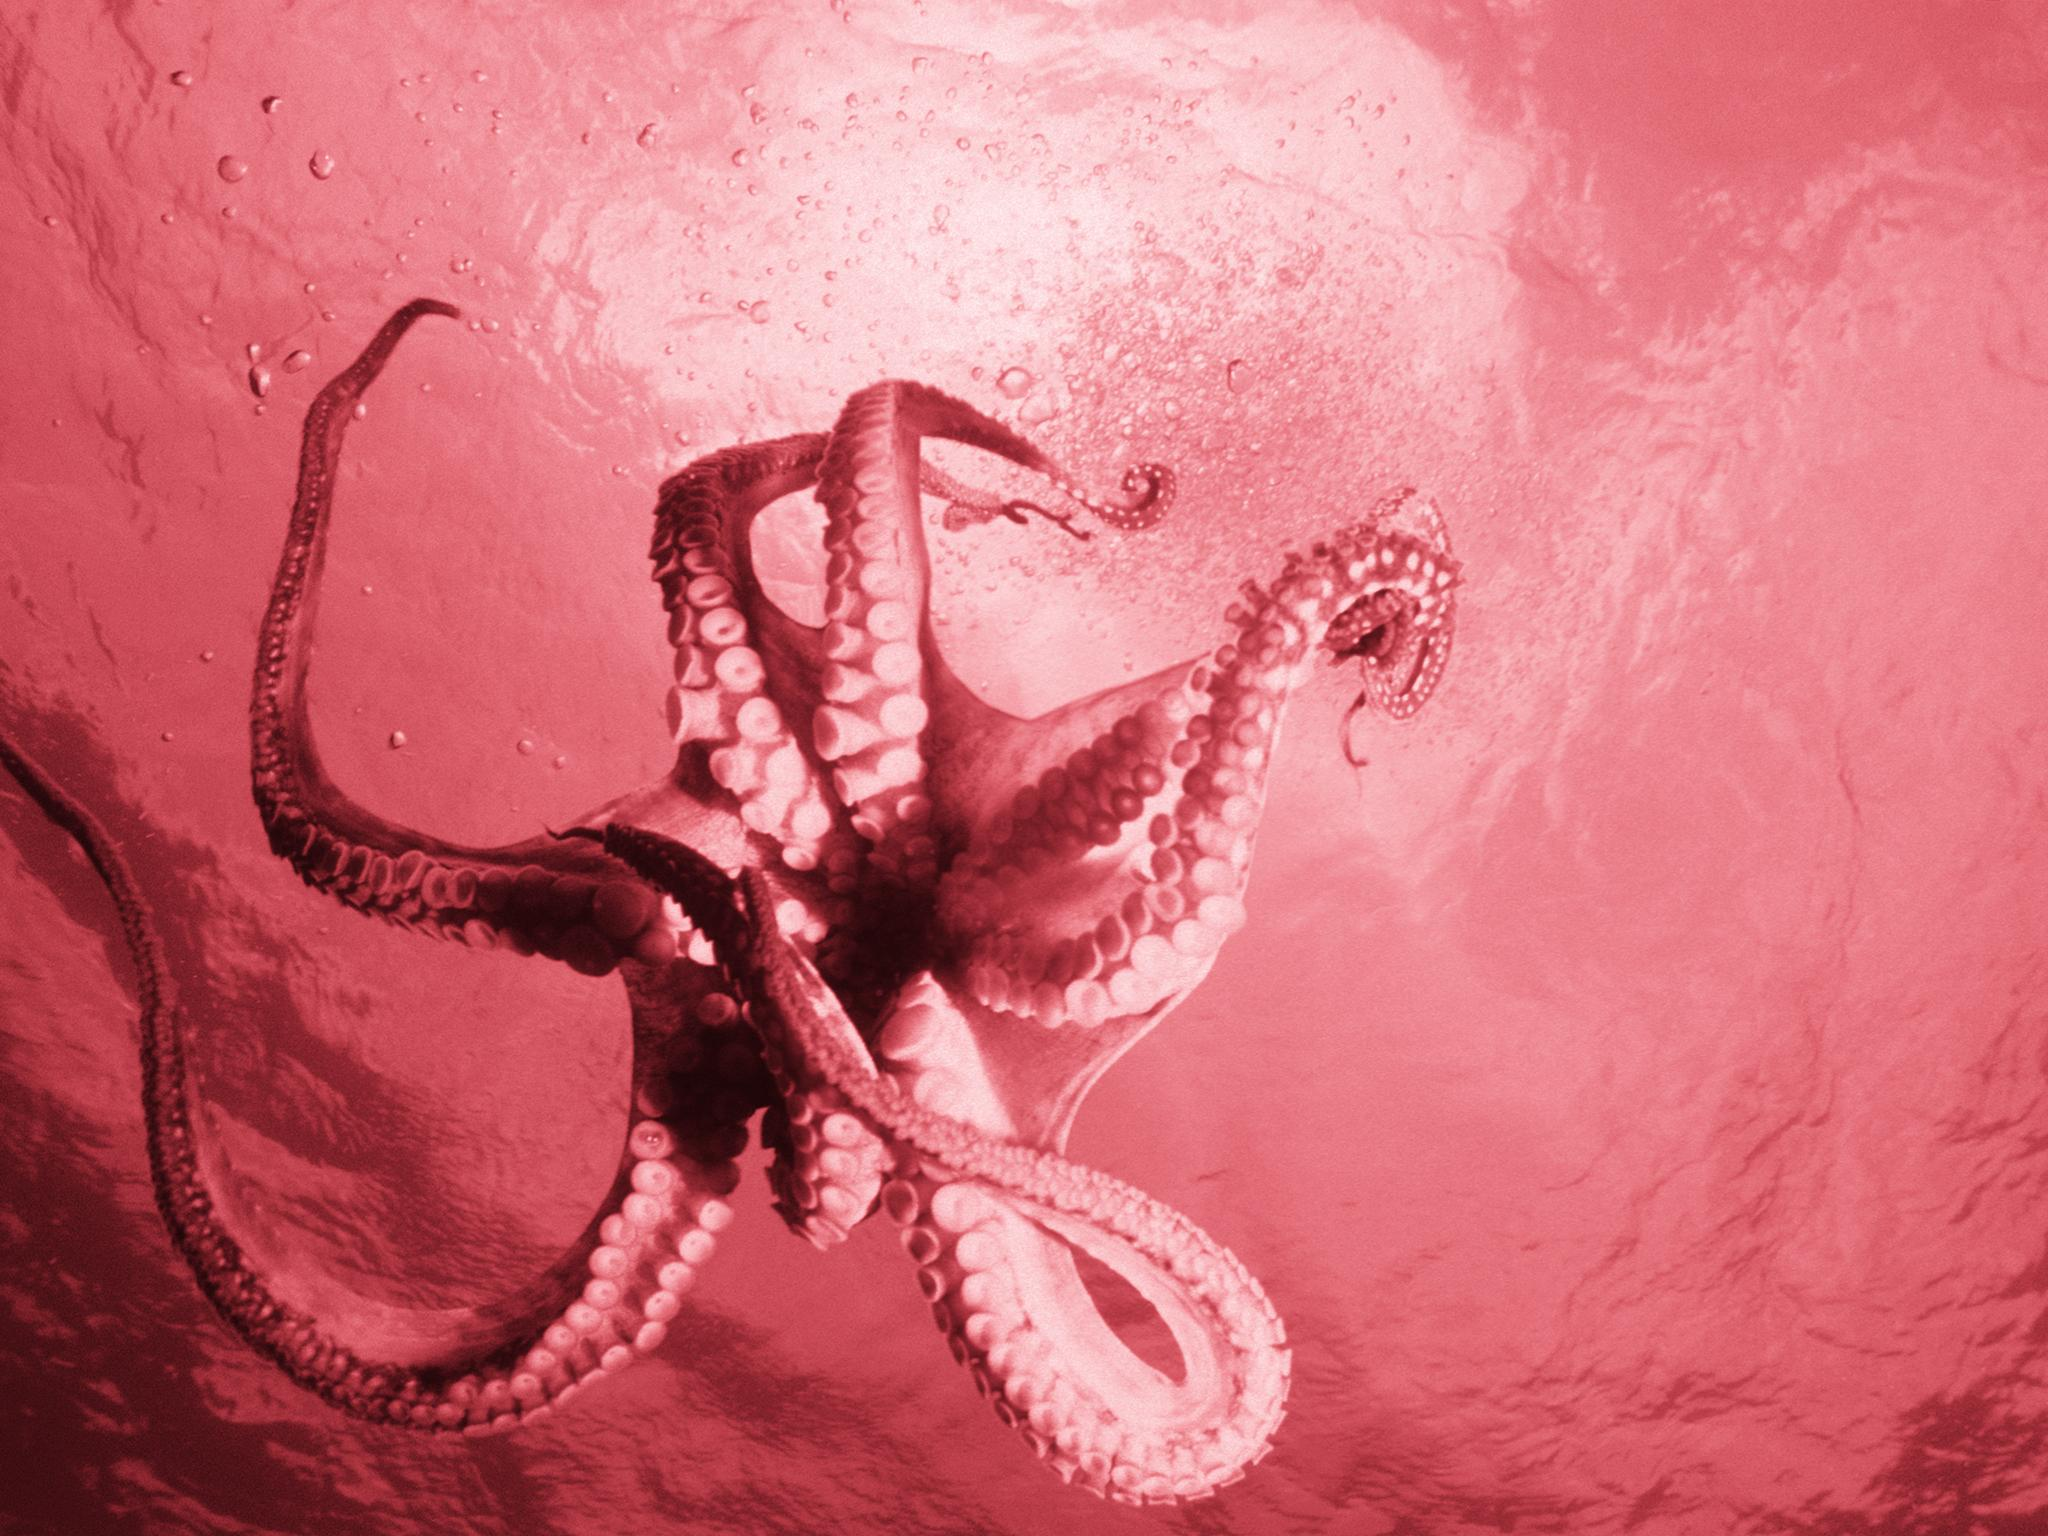 Are octopuses aliens from outer space that were brought to Earth by